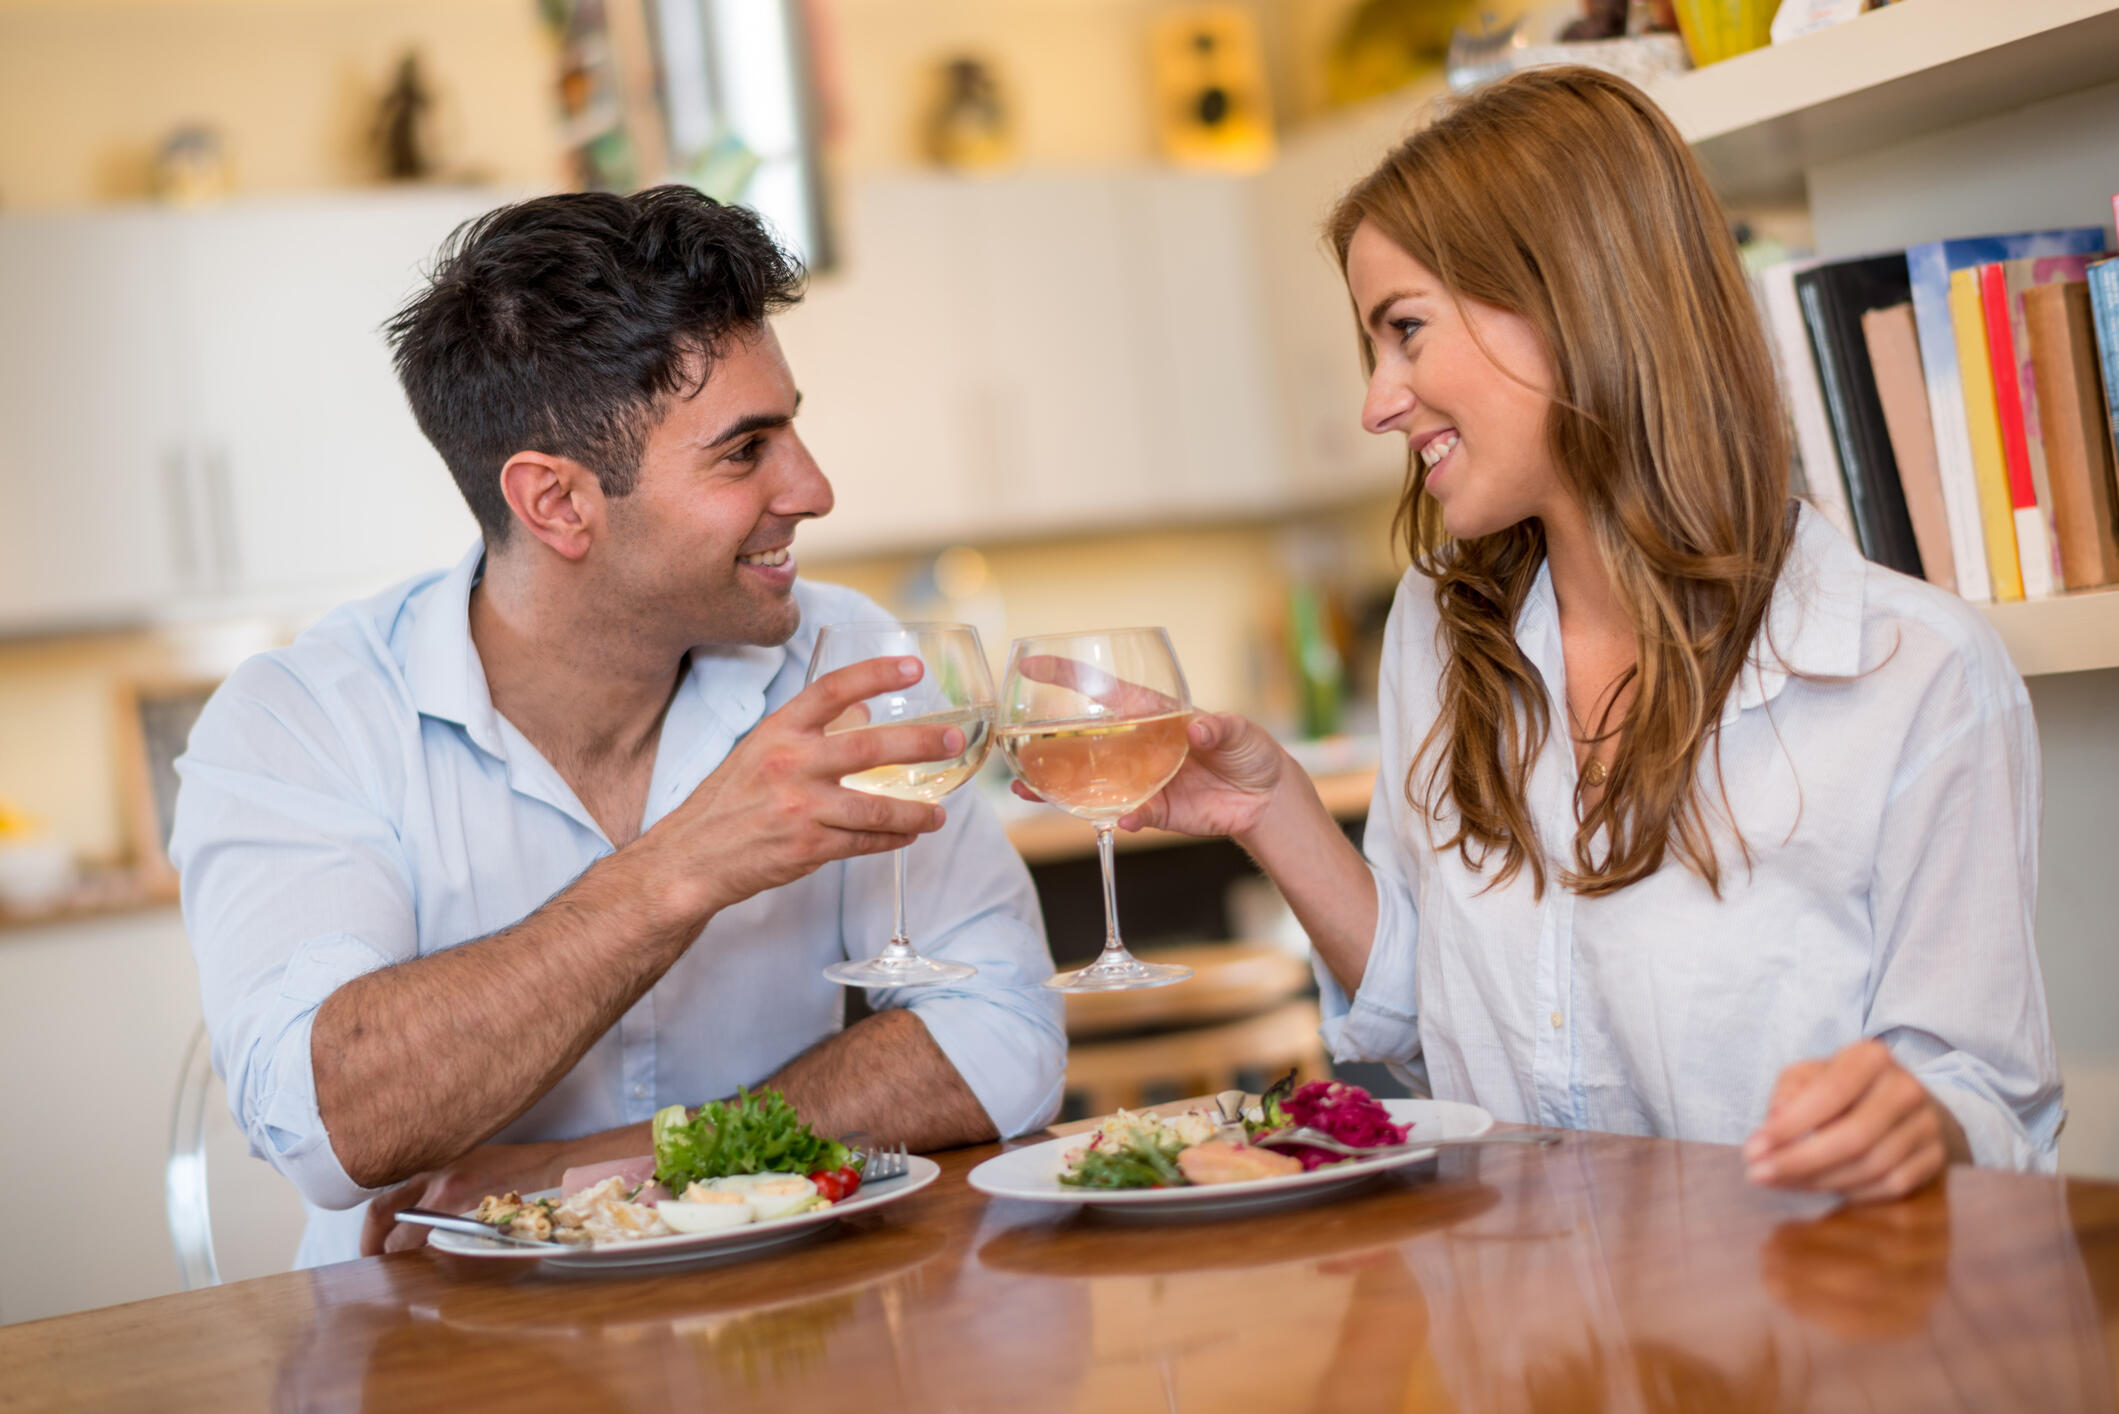 Relationship Therapist Makes Suggestions For Valentine's Day